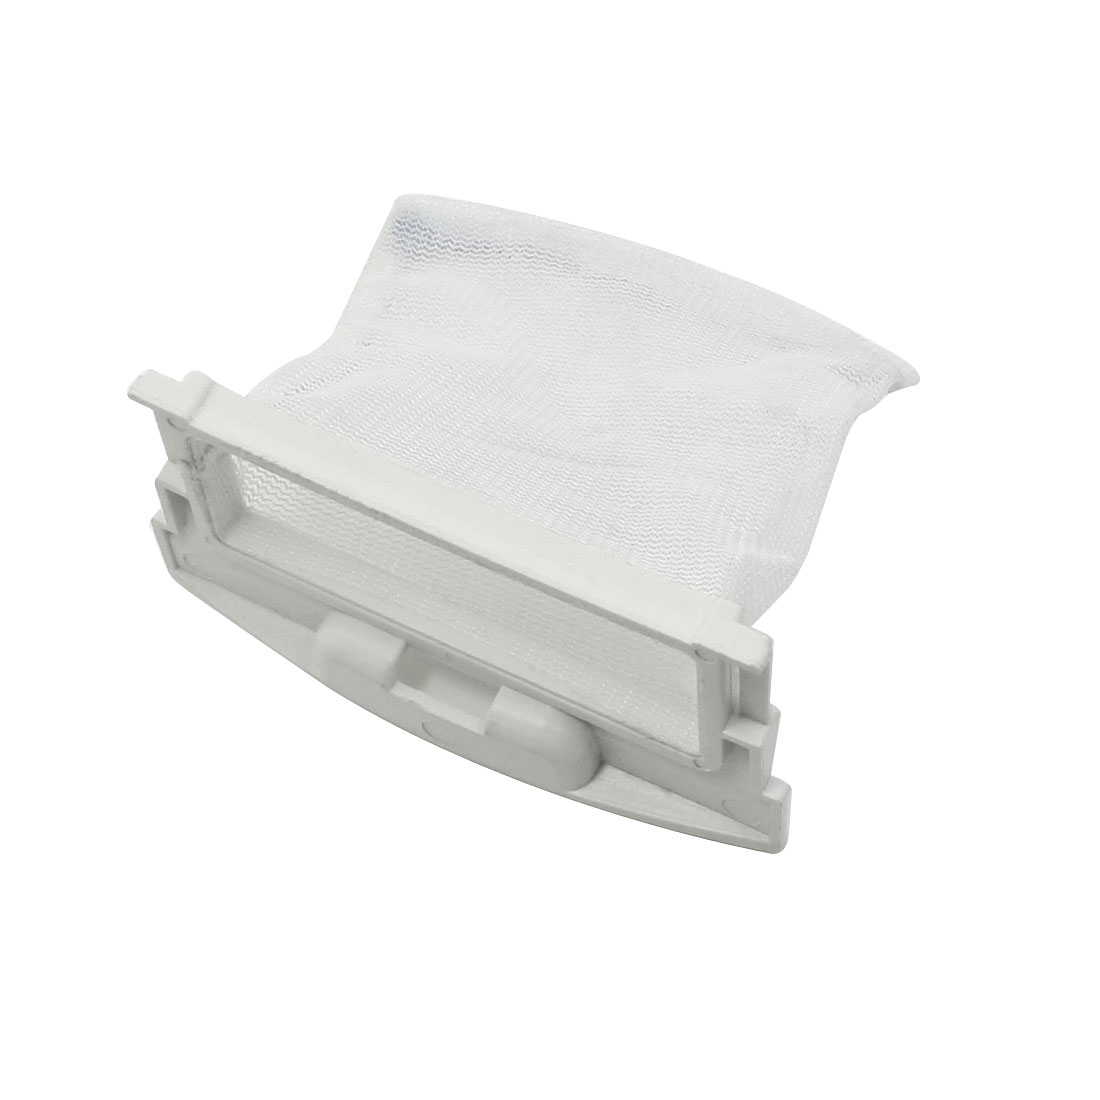 Plastic Rectangle Frame Mesh Netty Filter Bag for Laishida Washing Machine